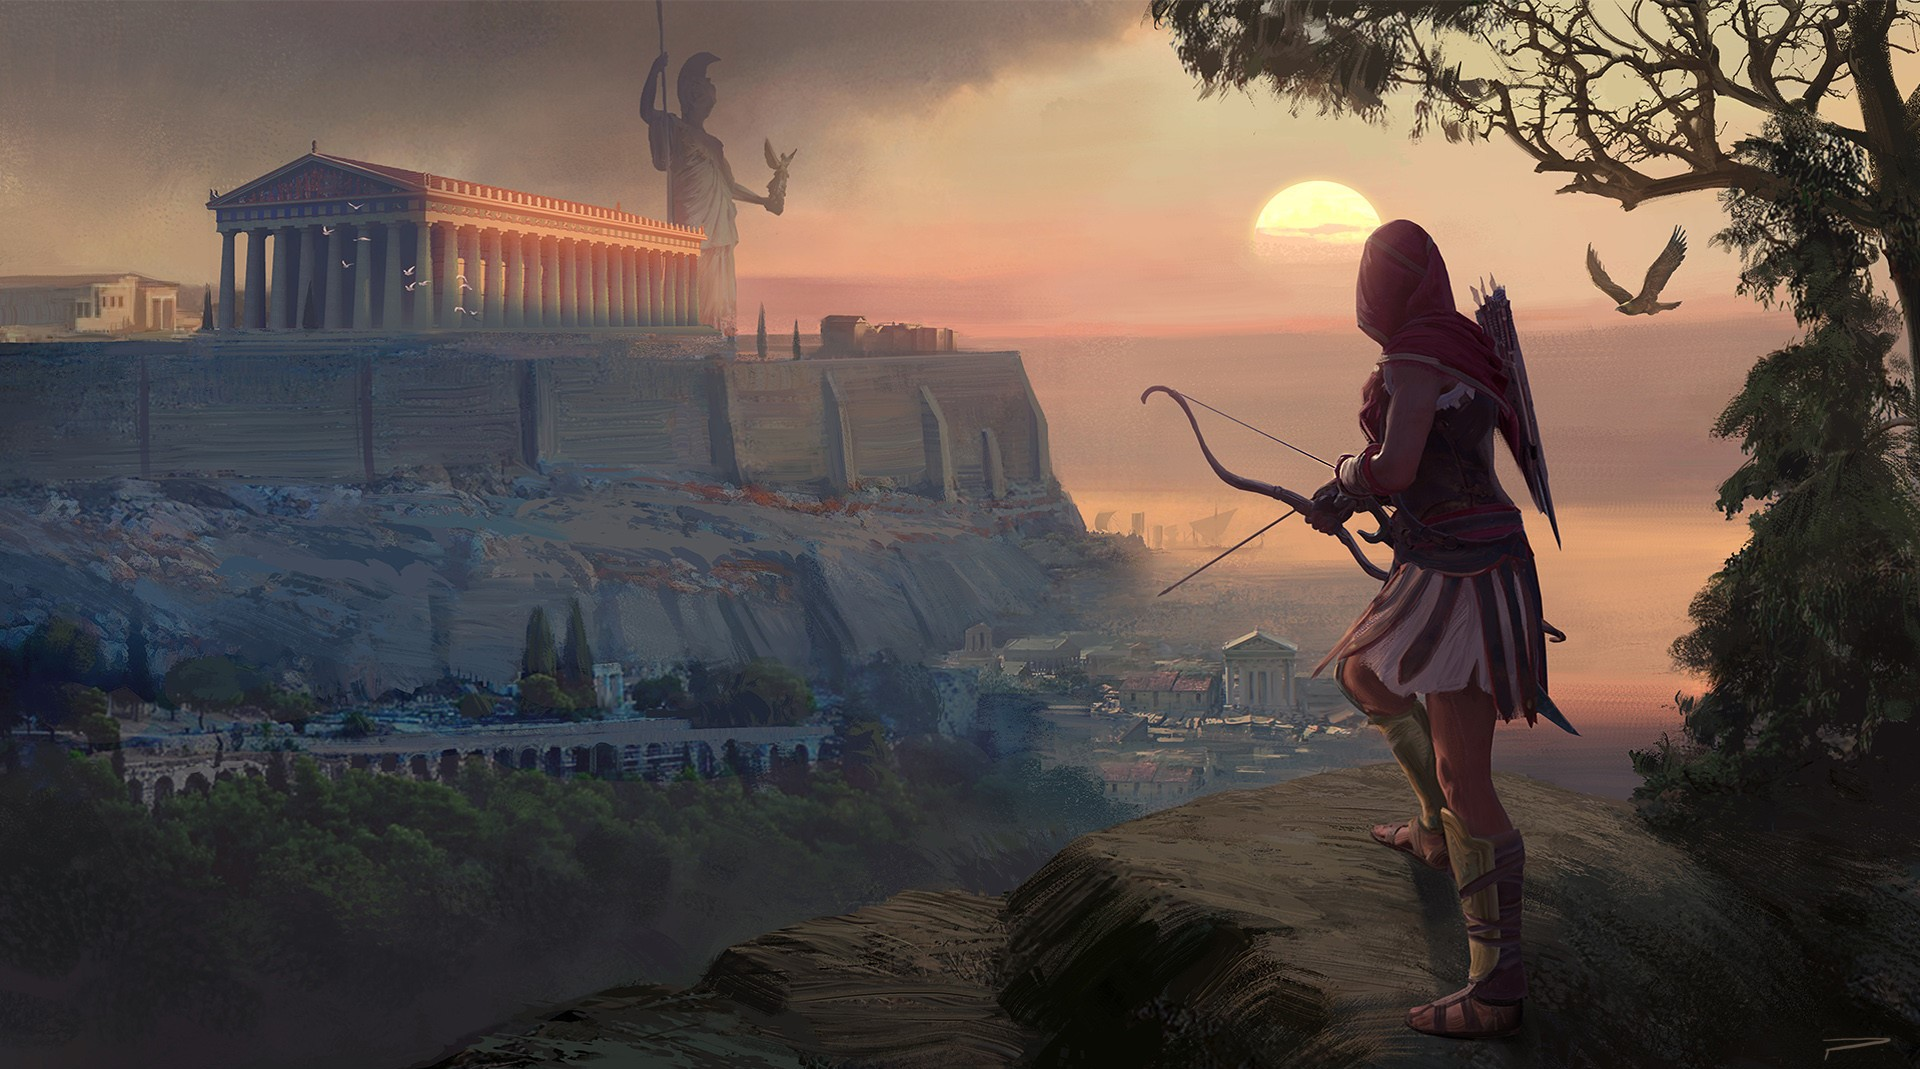 © Hugo Puzzuoli, Kassandra's Journey, Assassin's Creed Odyssey, Ubisoft.